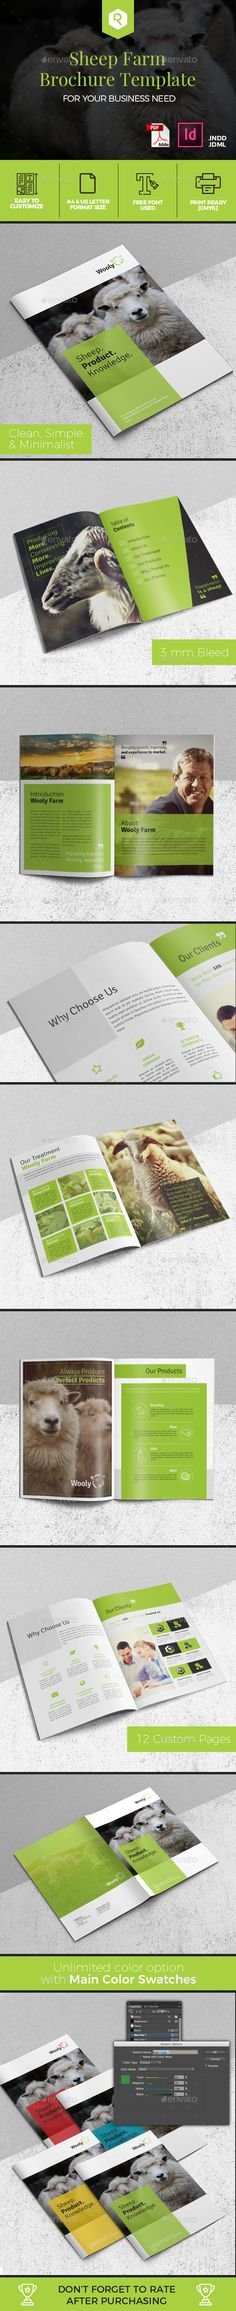 Sheep Farm Brochure — InDesign INDD #flyer #indesign • Available here → https://graphicriver.net/item/sheep-farm-brochure/19591943?ref=pxcr